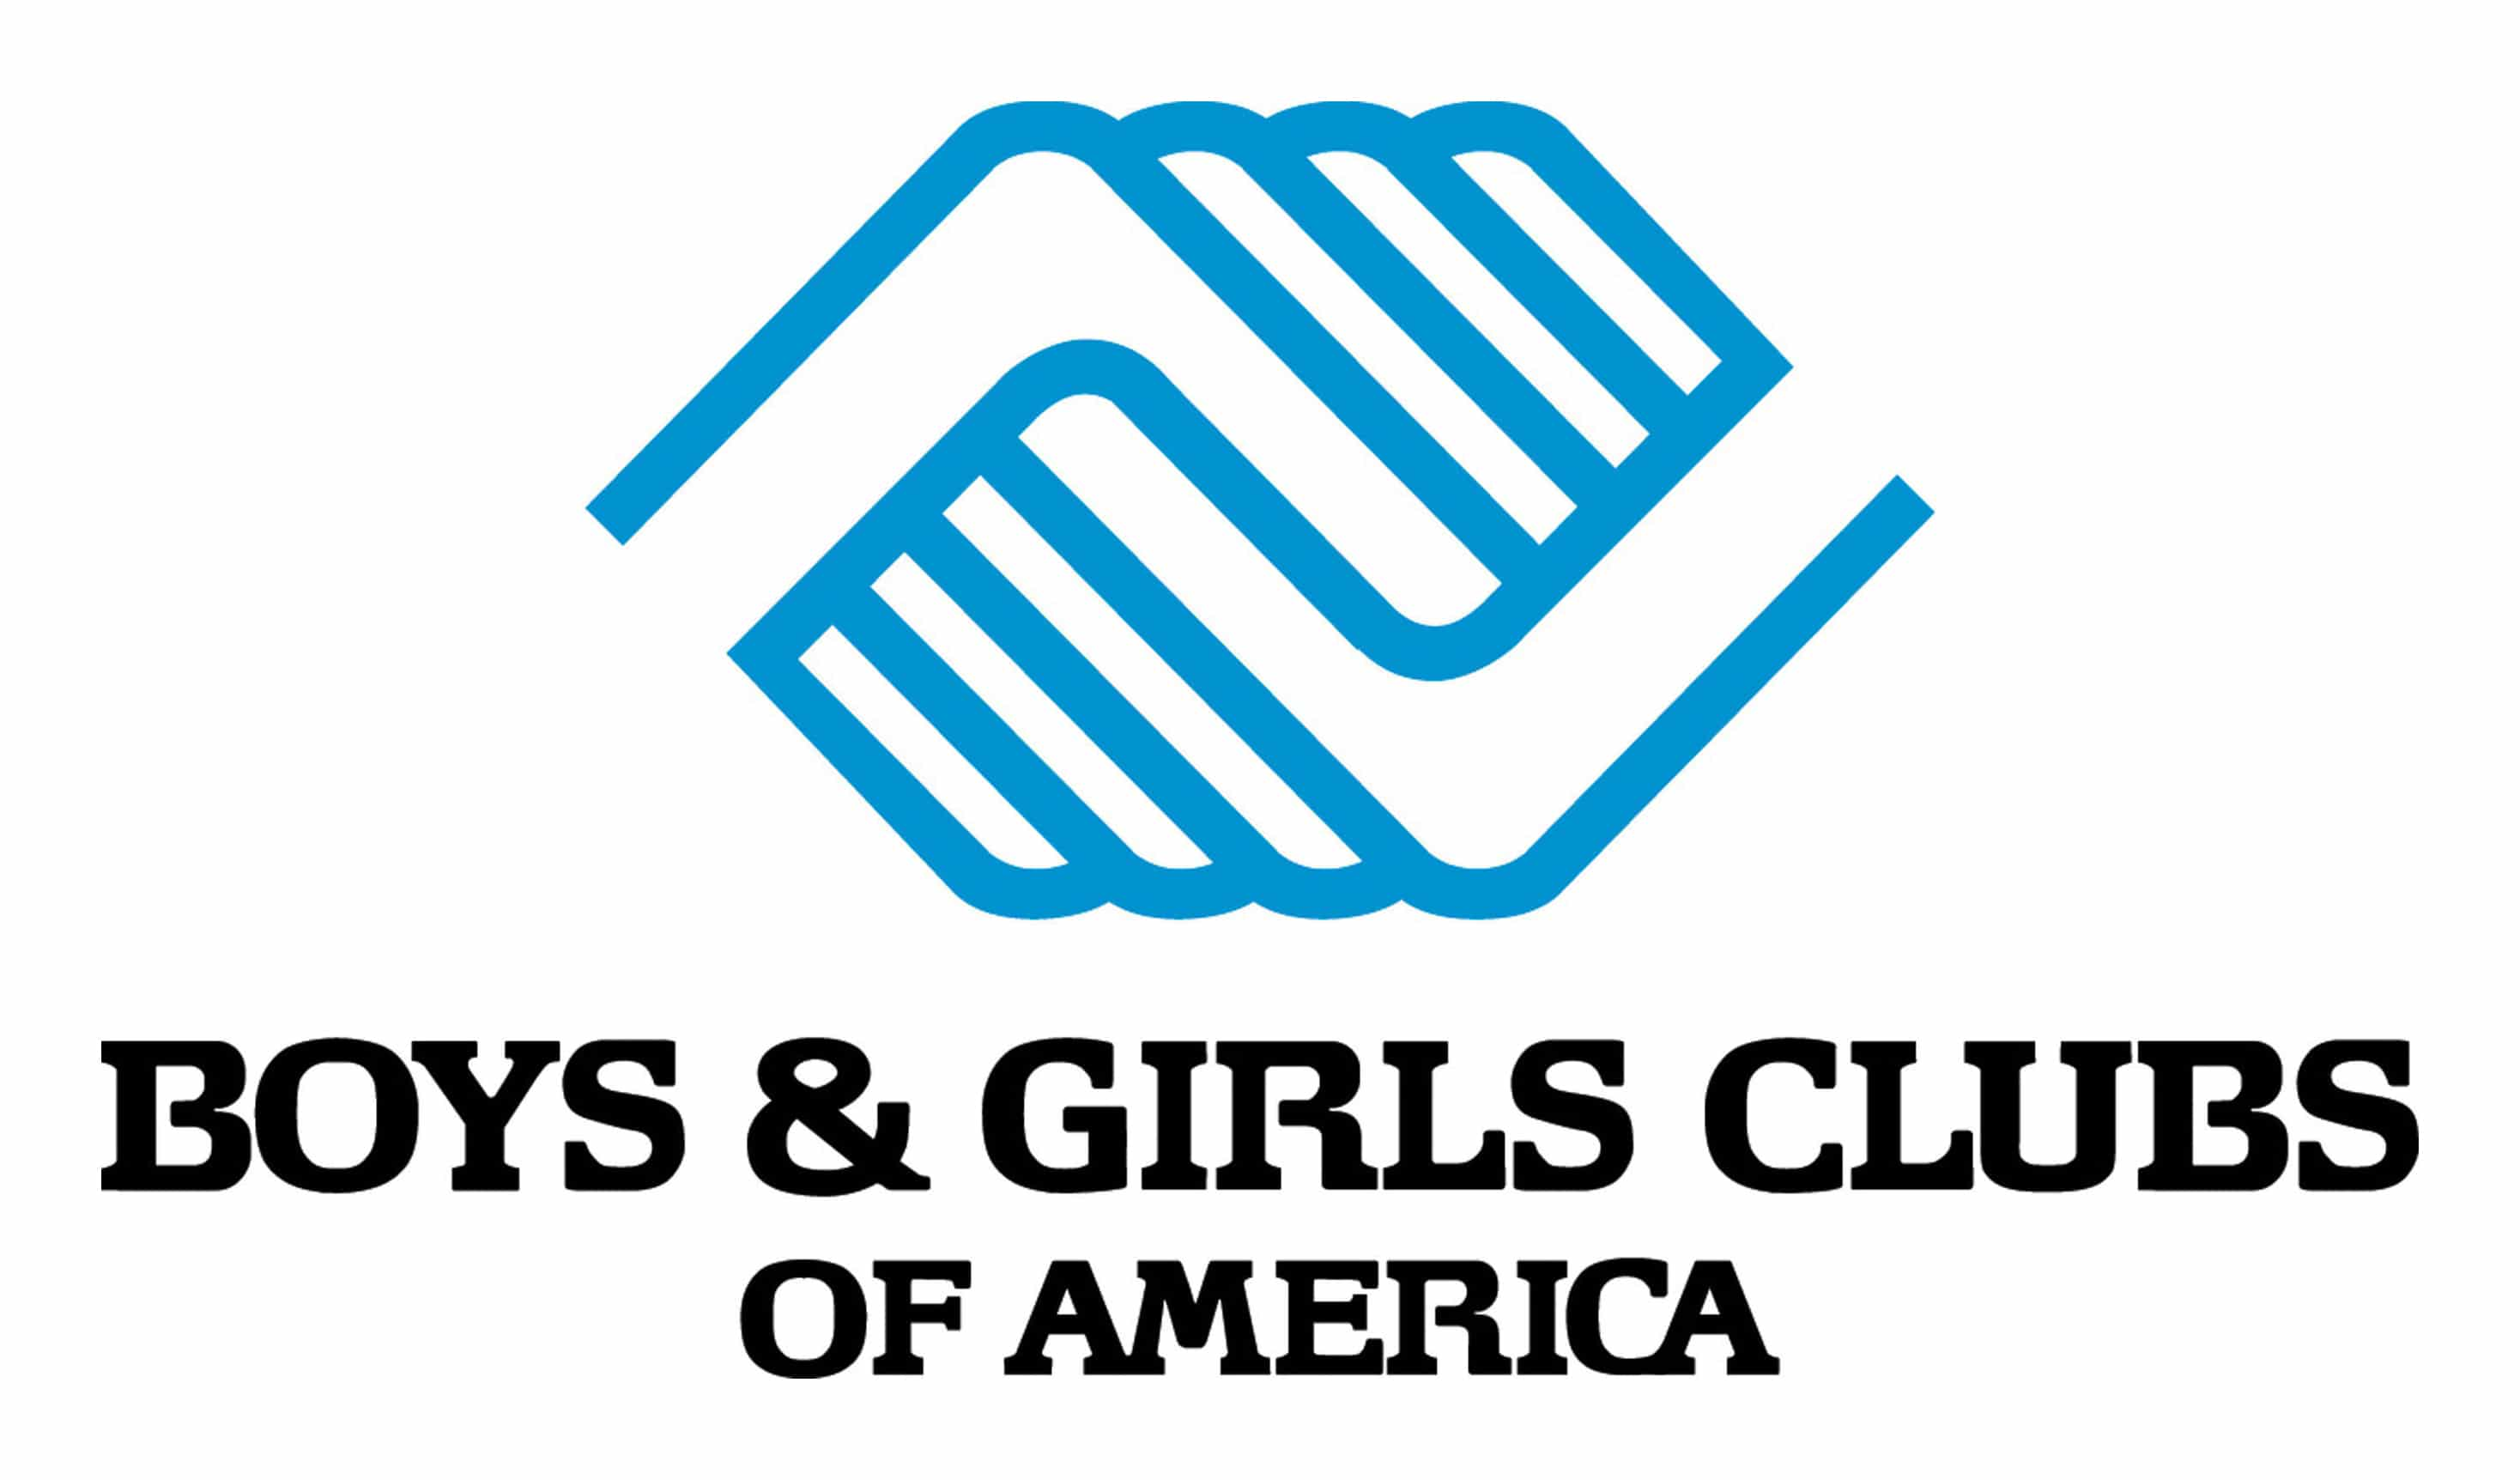 BOYS AND GIRLS CLUBS OF AMERICA LOGO